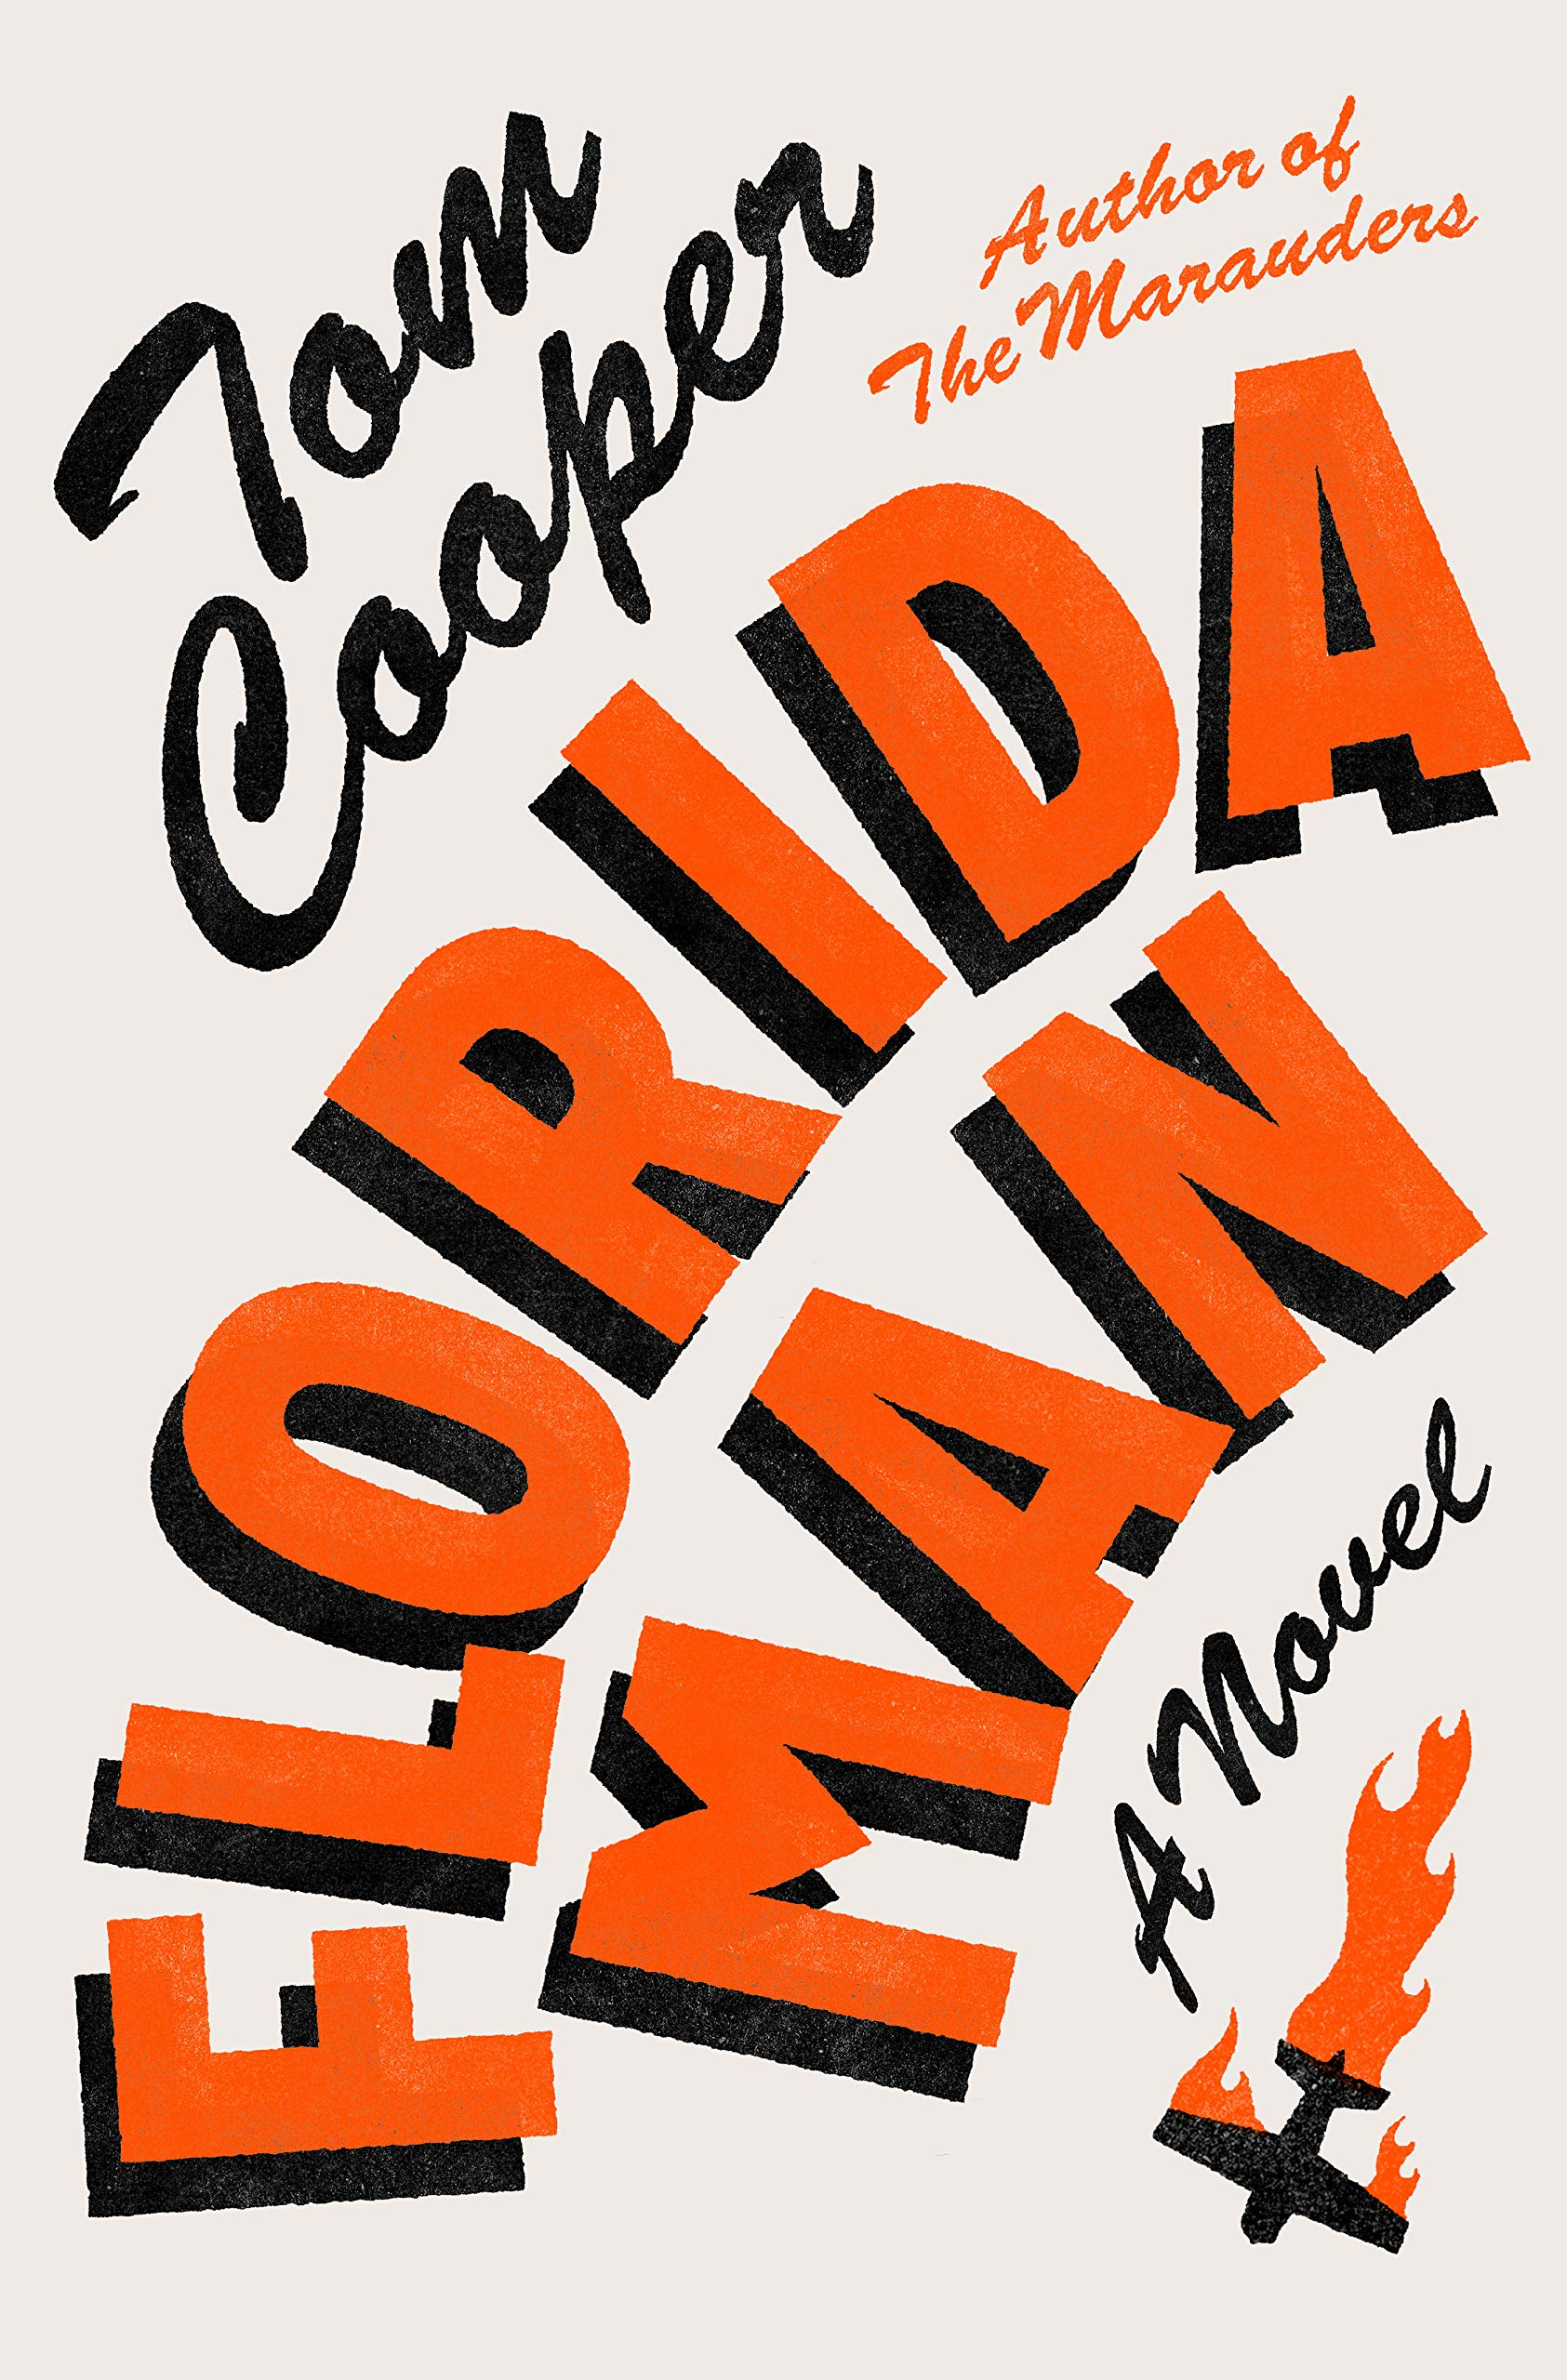 Florida Man: A Novel: Cooper, Tom: 9780593133316: Amazon.com: Books